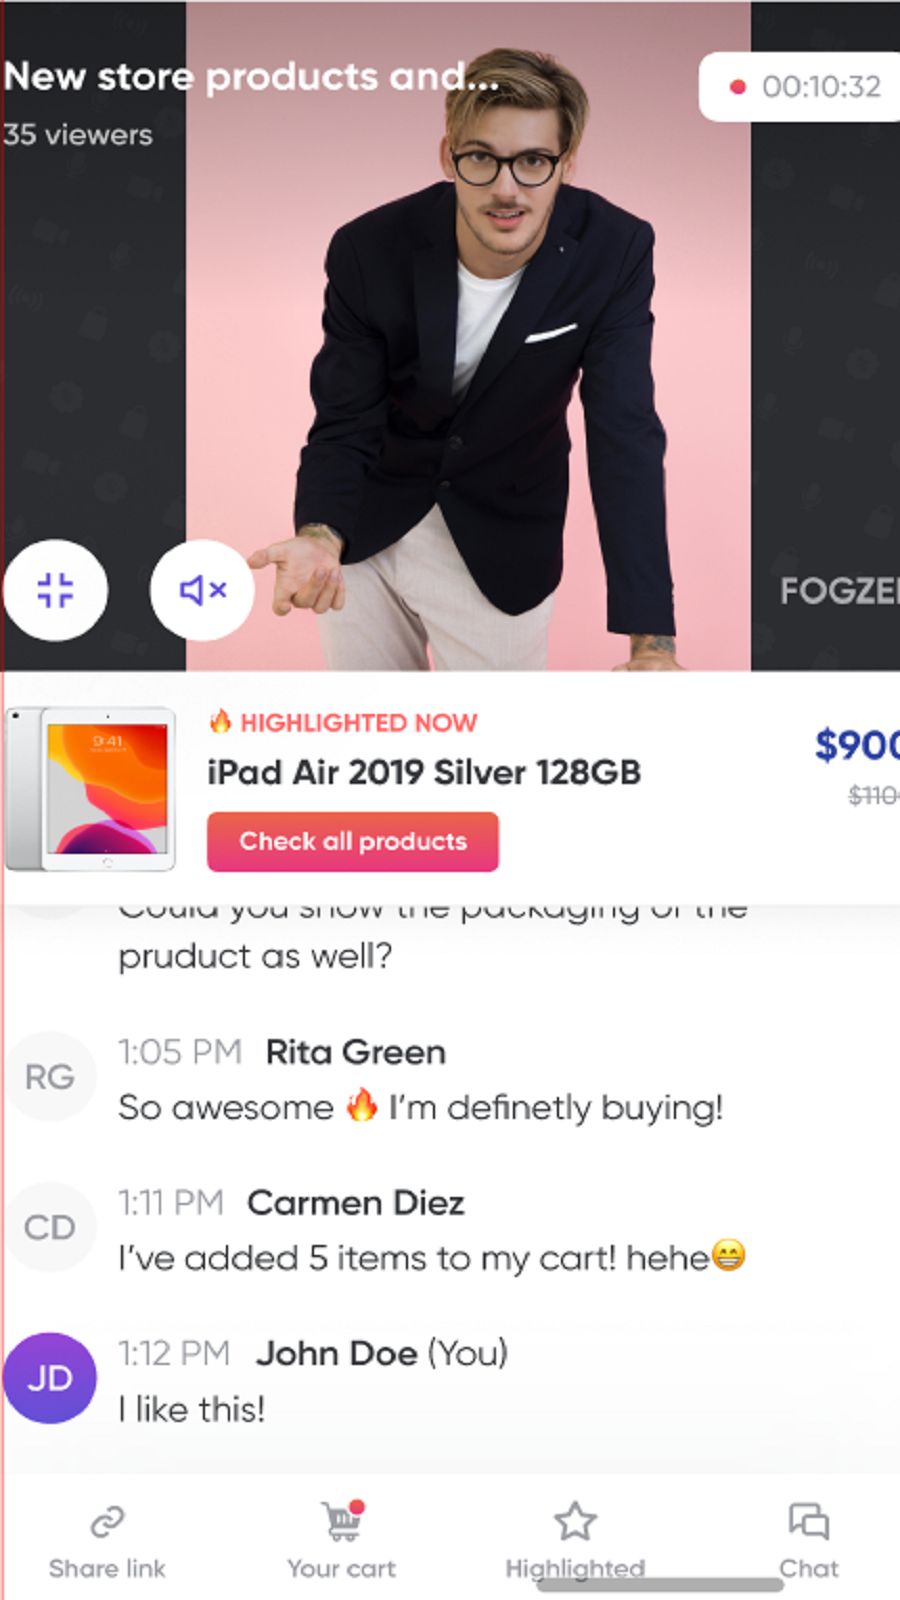 Go live on your mobile at any time